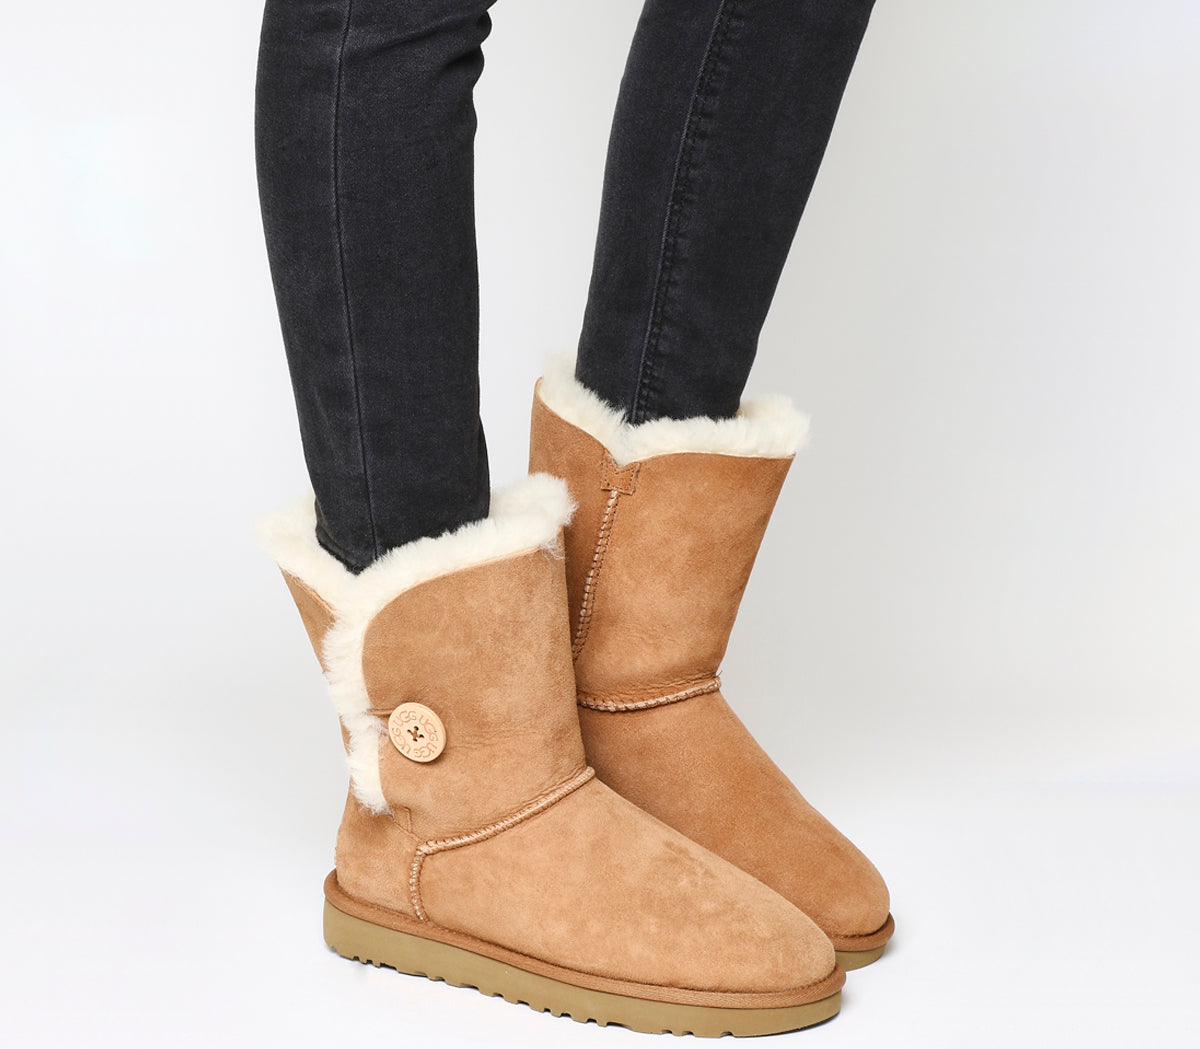 22560bbb26c Womens Ugg Bailey Button II Boots Chestnut Suede